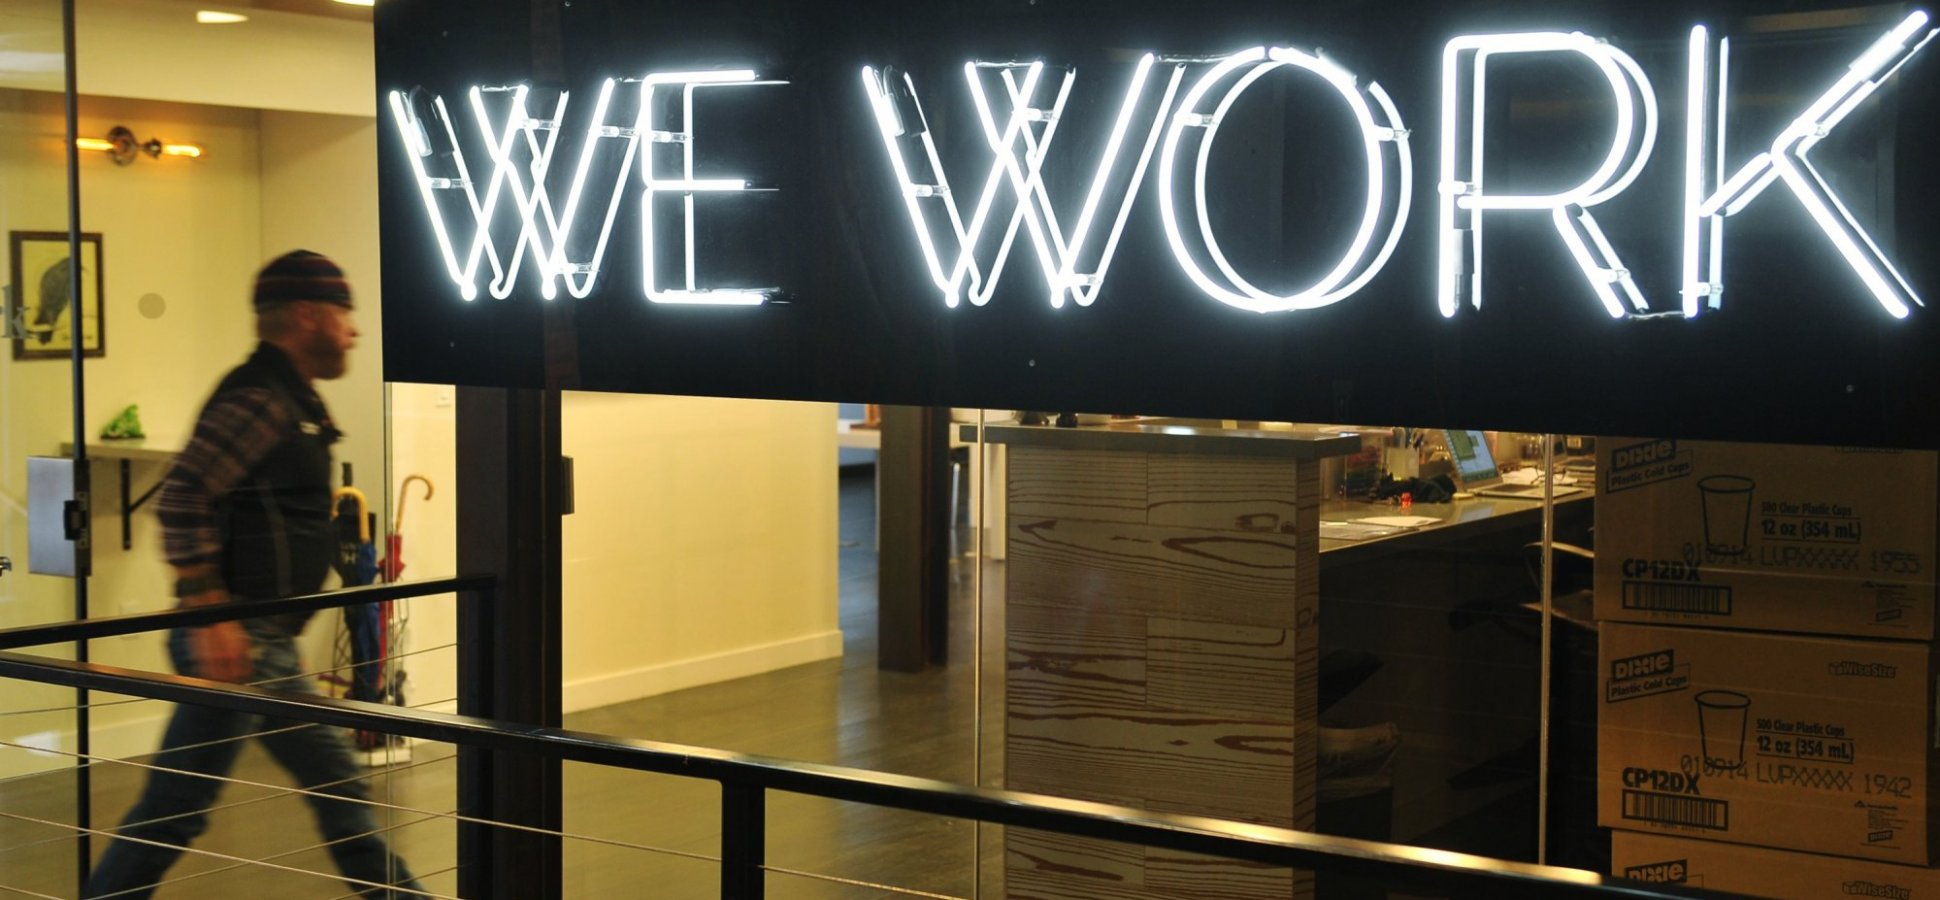 WeWork Just Made an Astonishing Announcement, and It's the Most Bizarre (and Entertaining) Thing Ever